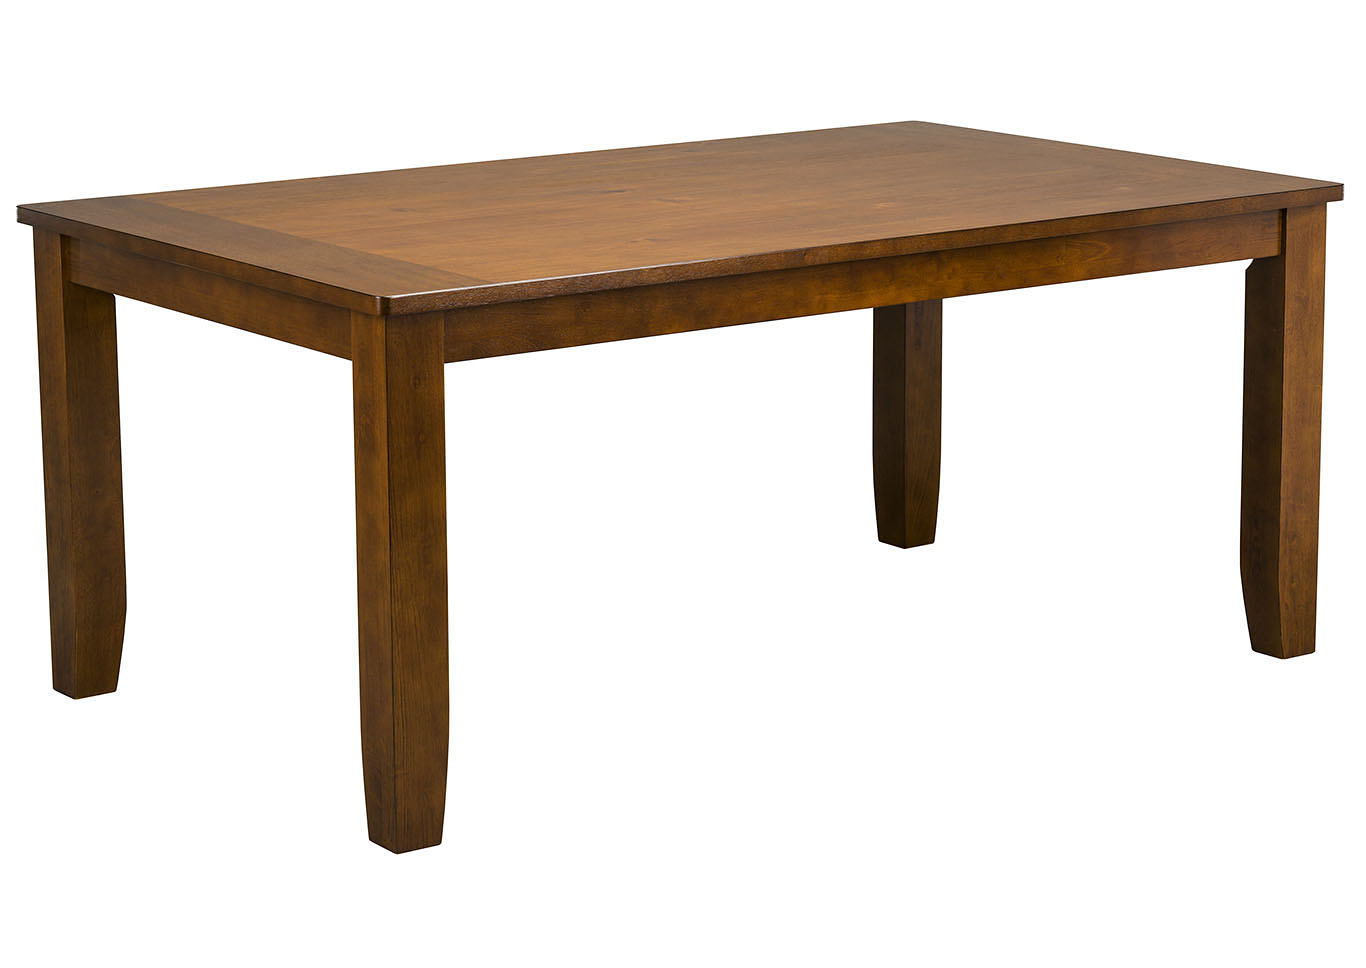 Vintage Brown Rectangular Dining Table,Standard